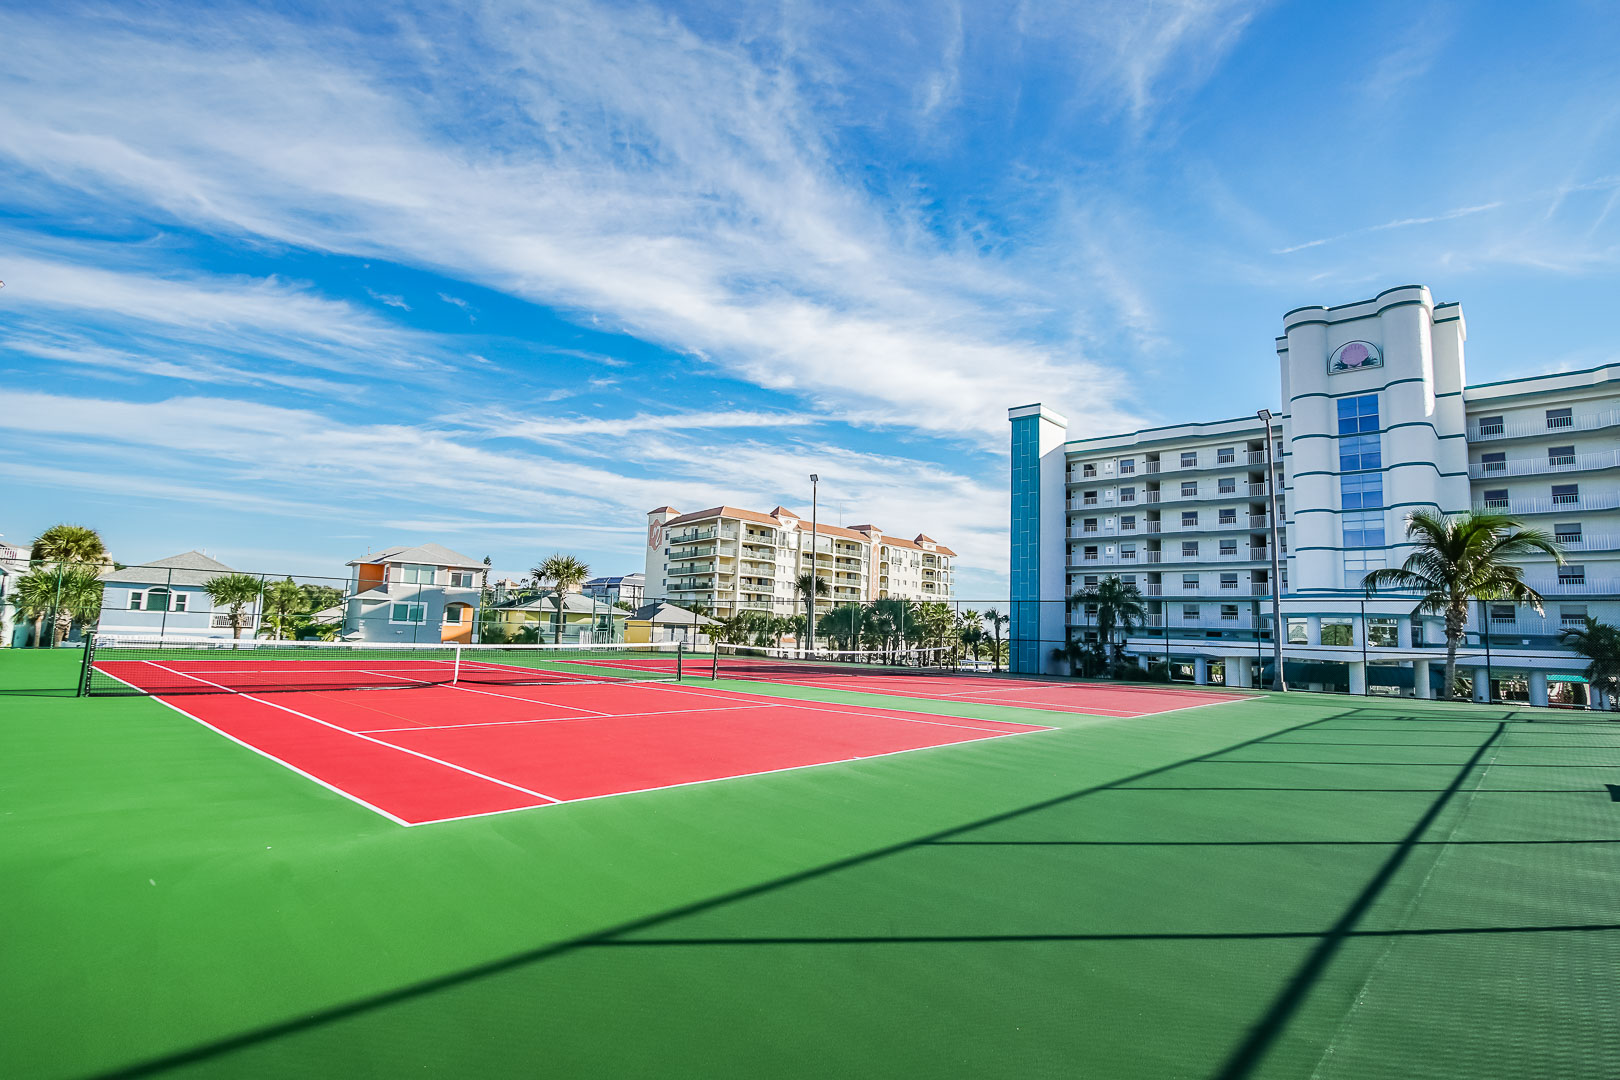 A vibrant outdoor tennis court at VRI's Discovery Beach Resort in Cocoa Beach, Florida.